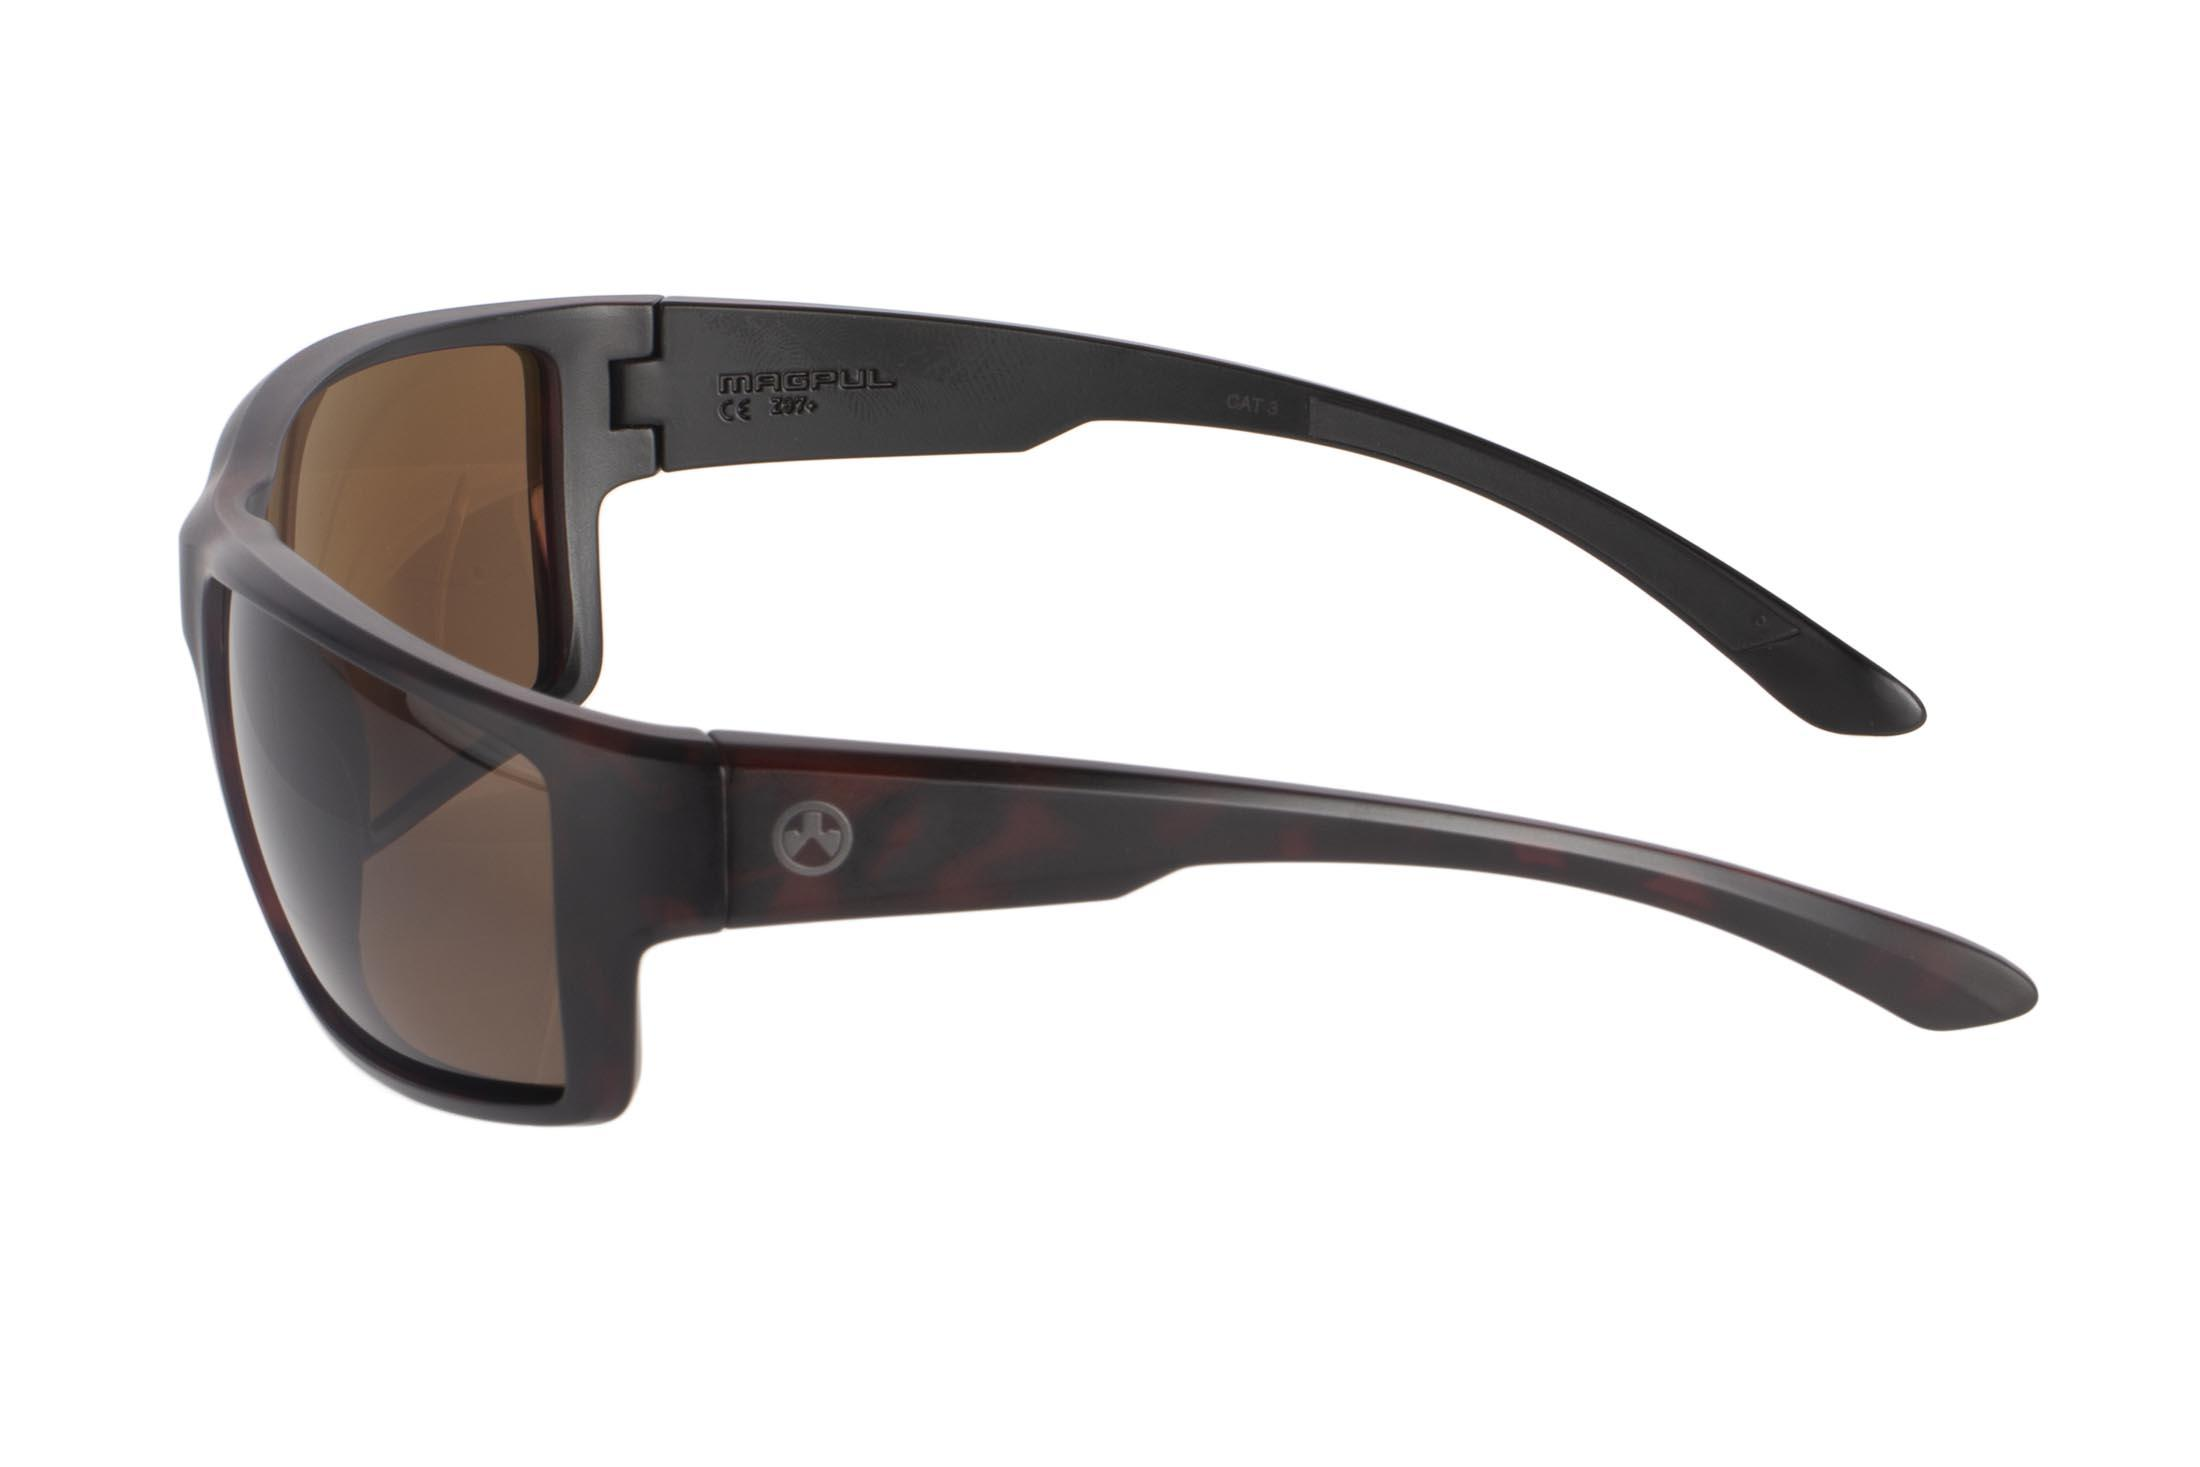 Magpul tortoise frame Terrain polarized sunglasses with bronze lenses are stylish, yet Z87+ and MIL-PRF 32432 ballistic rated